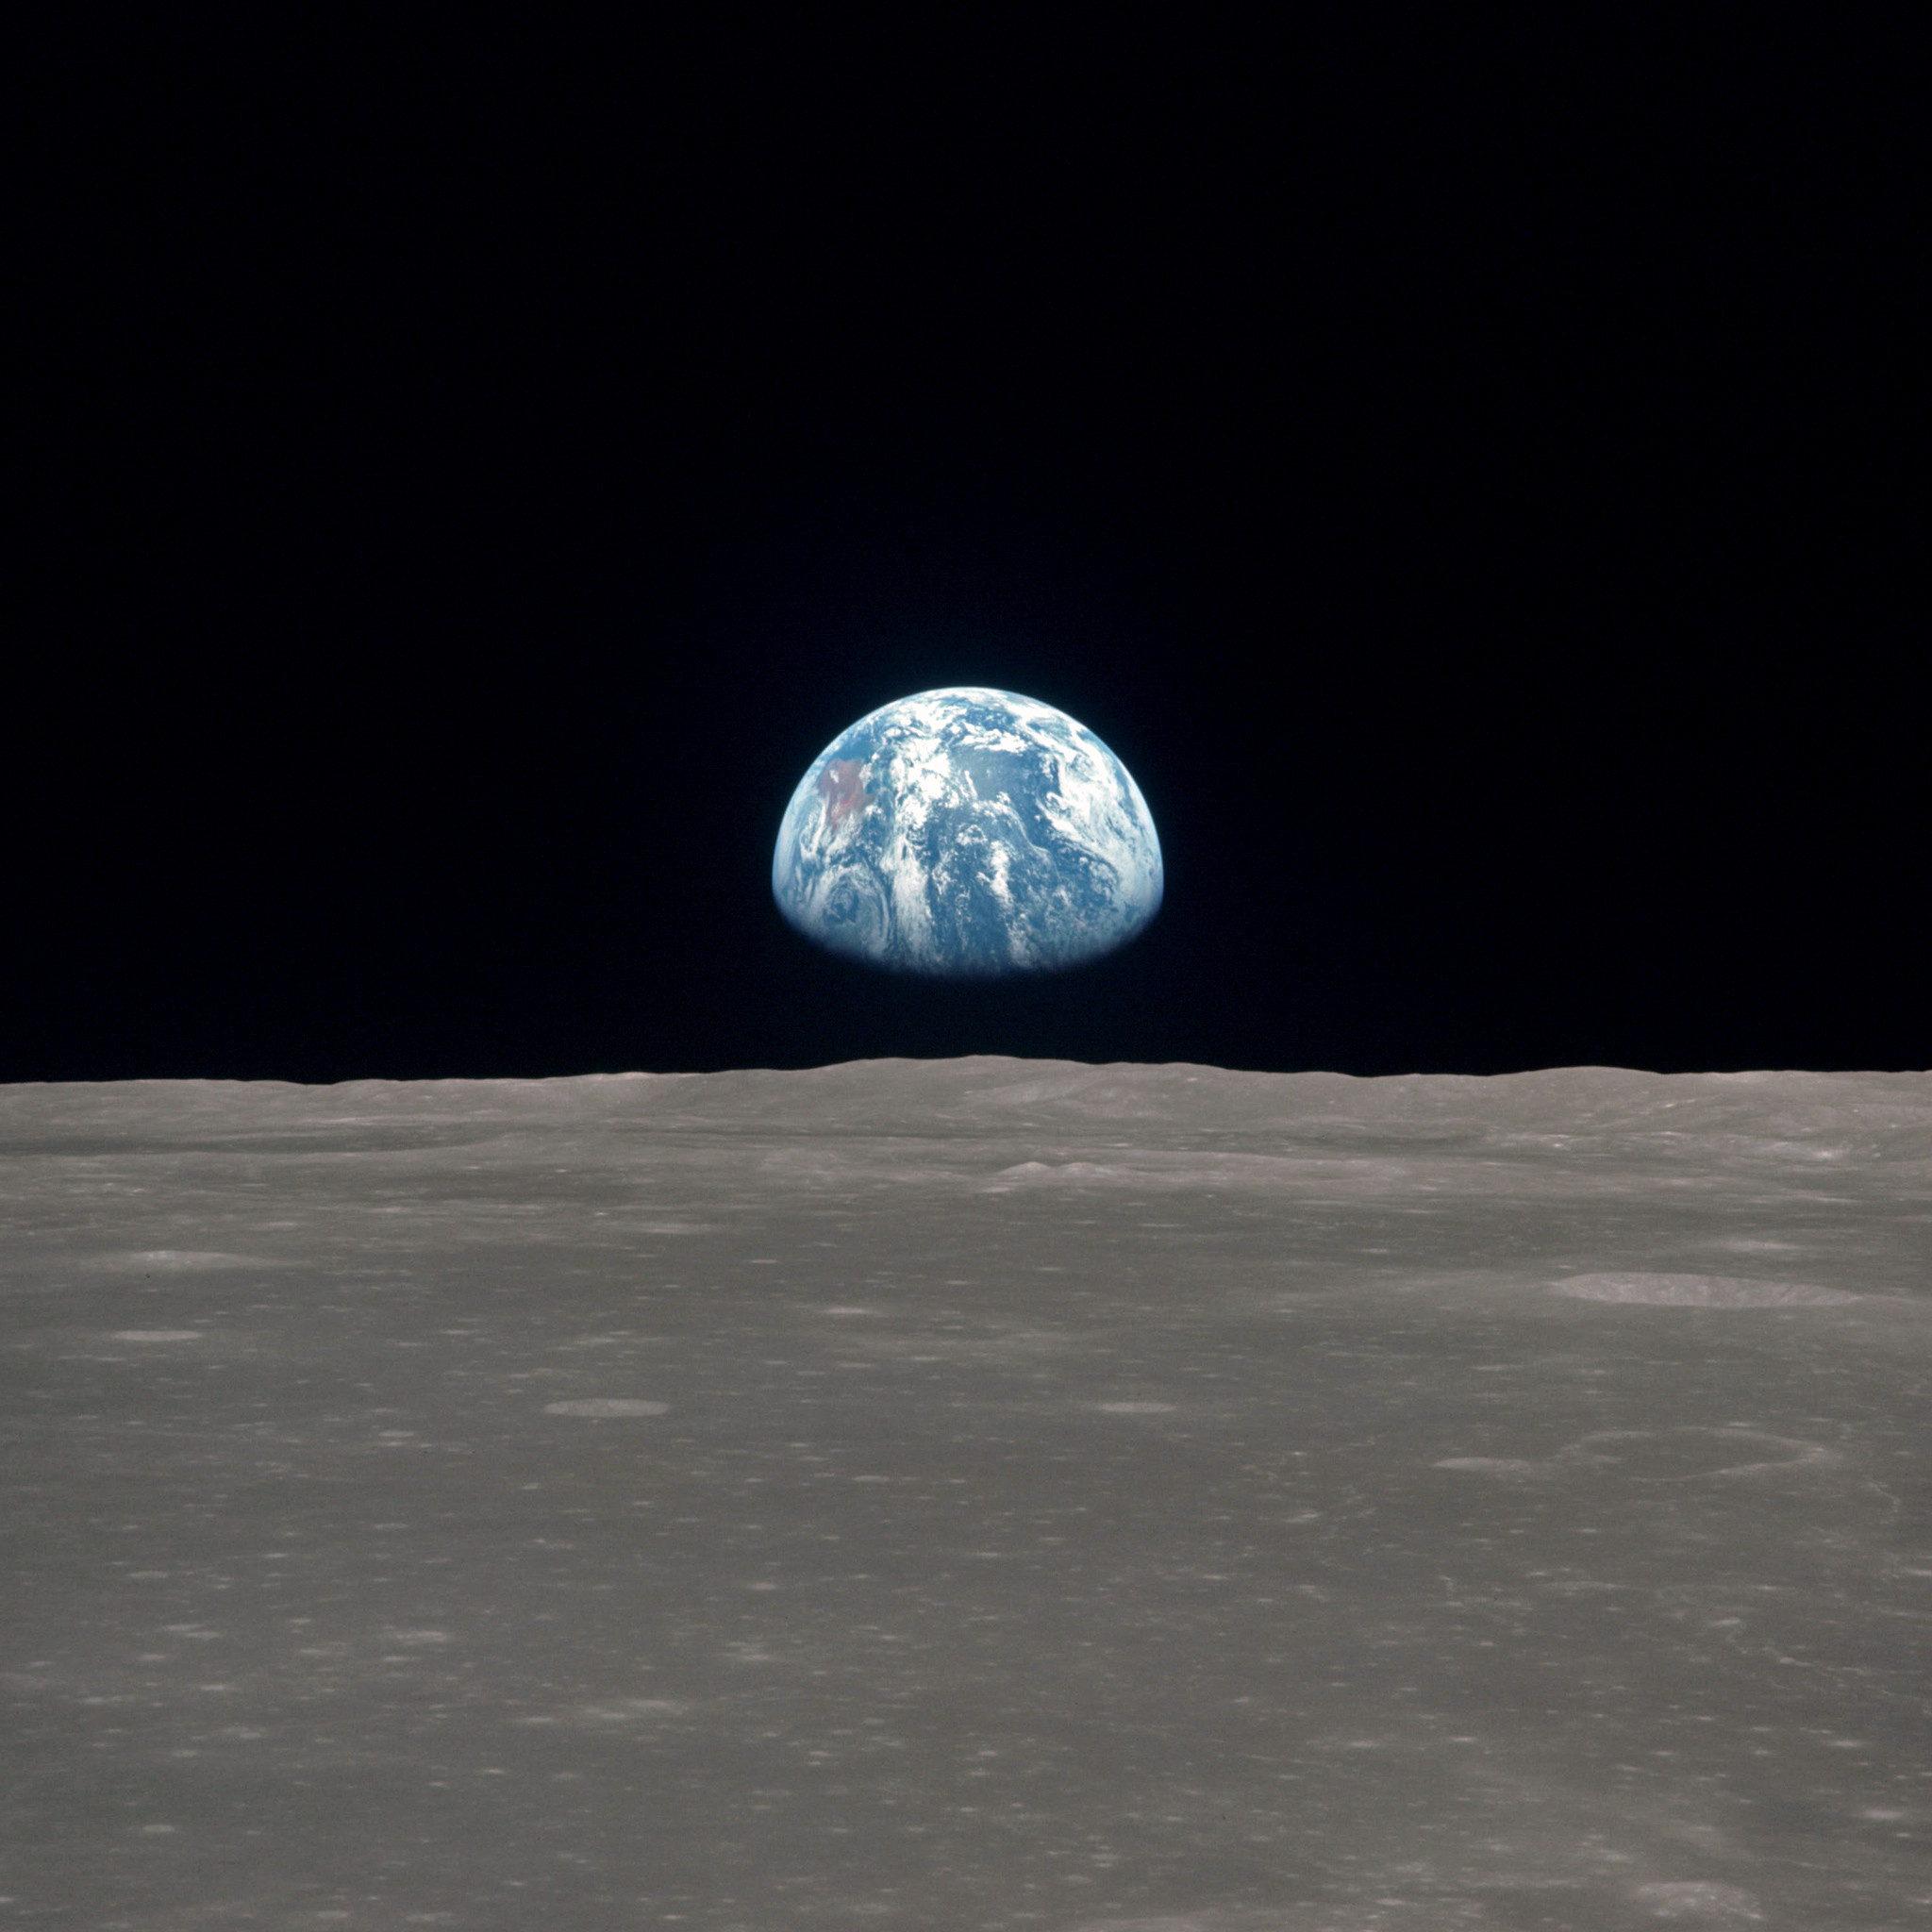 iRhwmJR as11 44 6550 planet earth seen from the